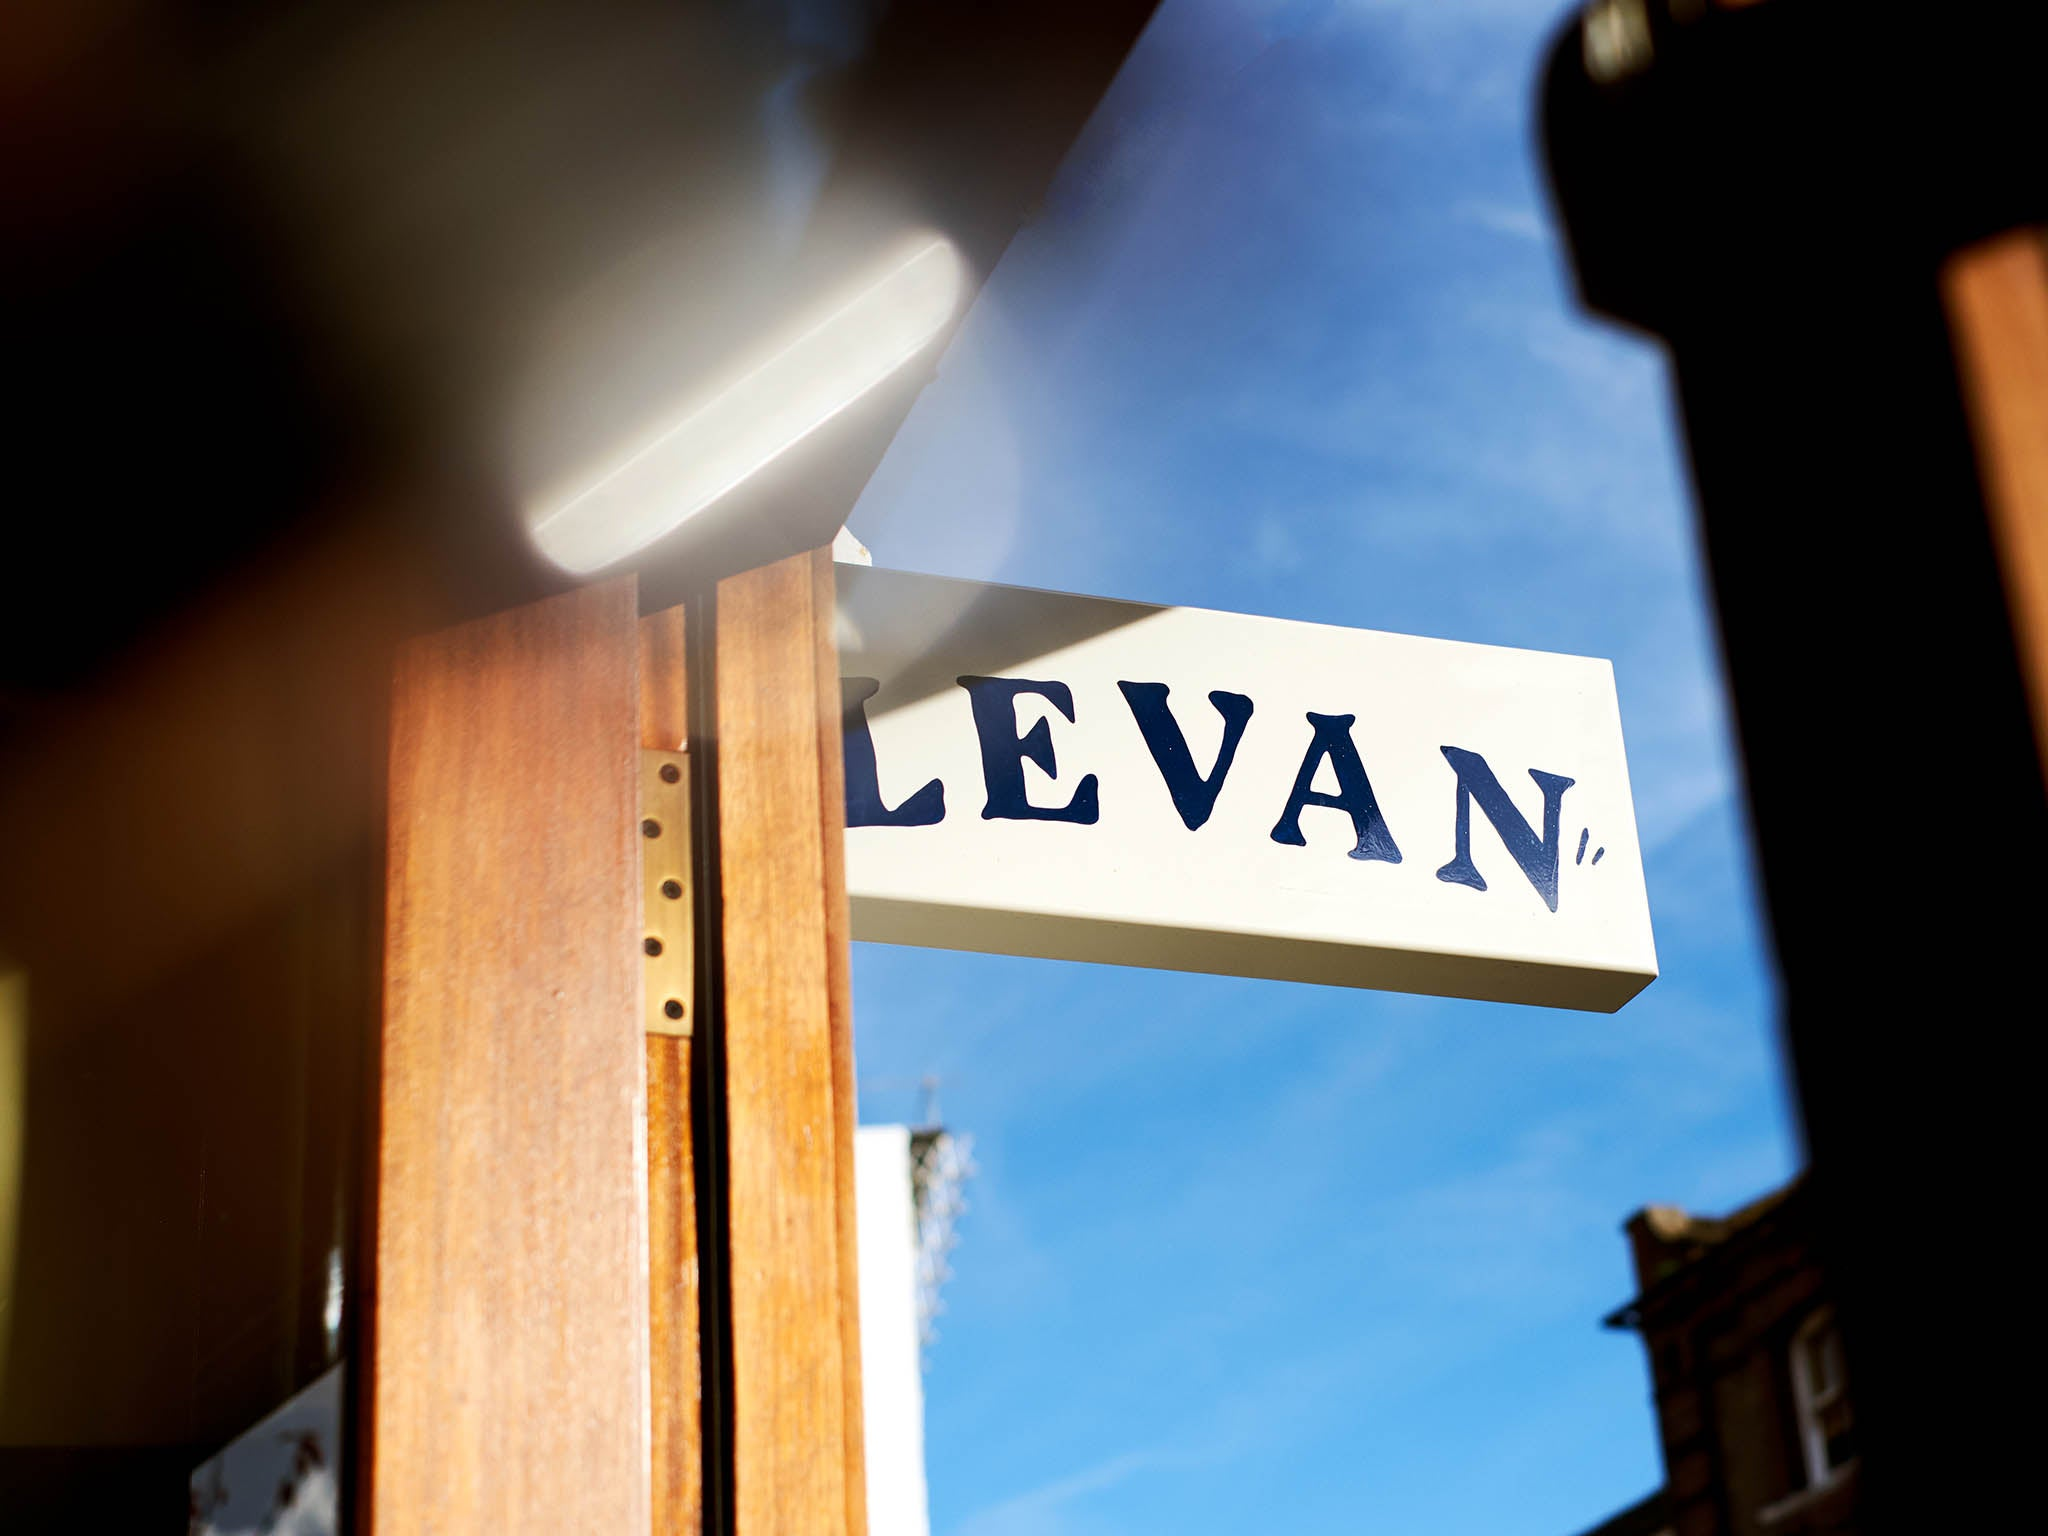 Levan, Peckham, restaurant review: The epitome of boujee-millennial dining in 2019 1